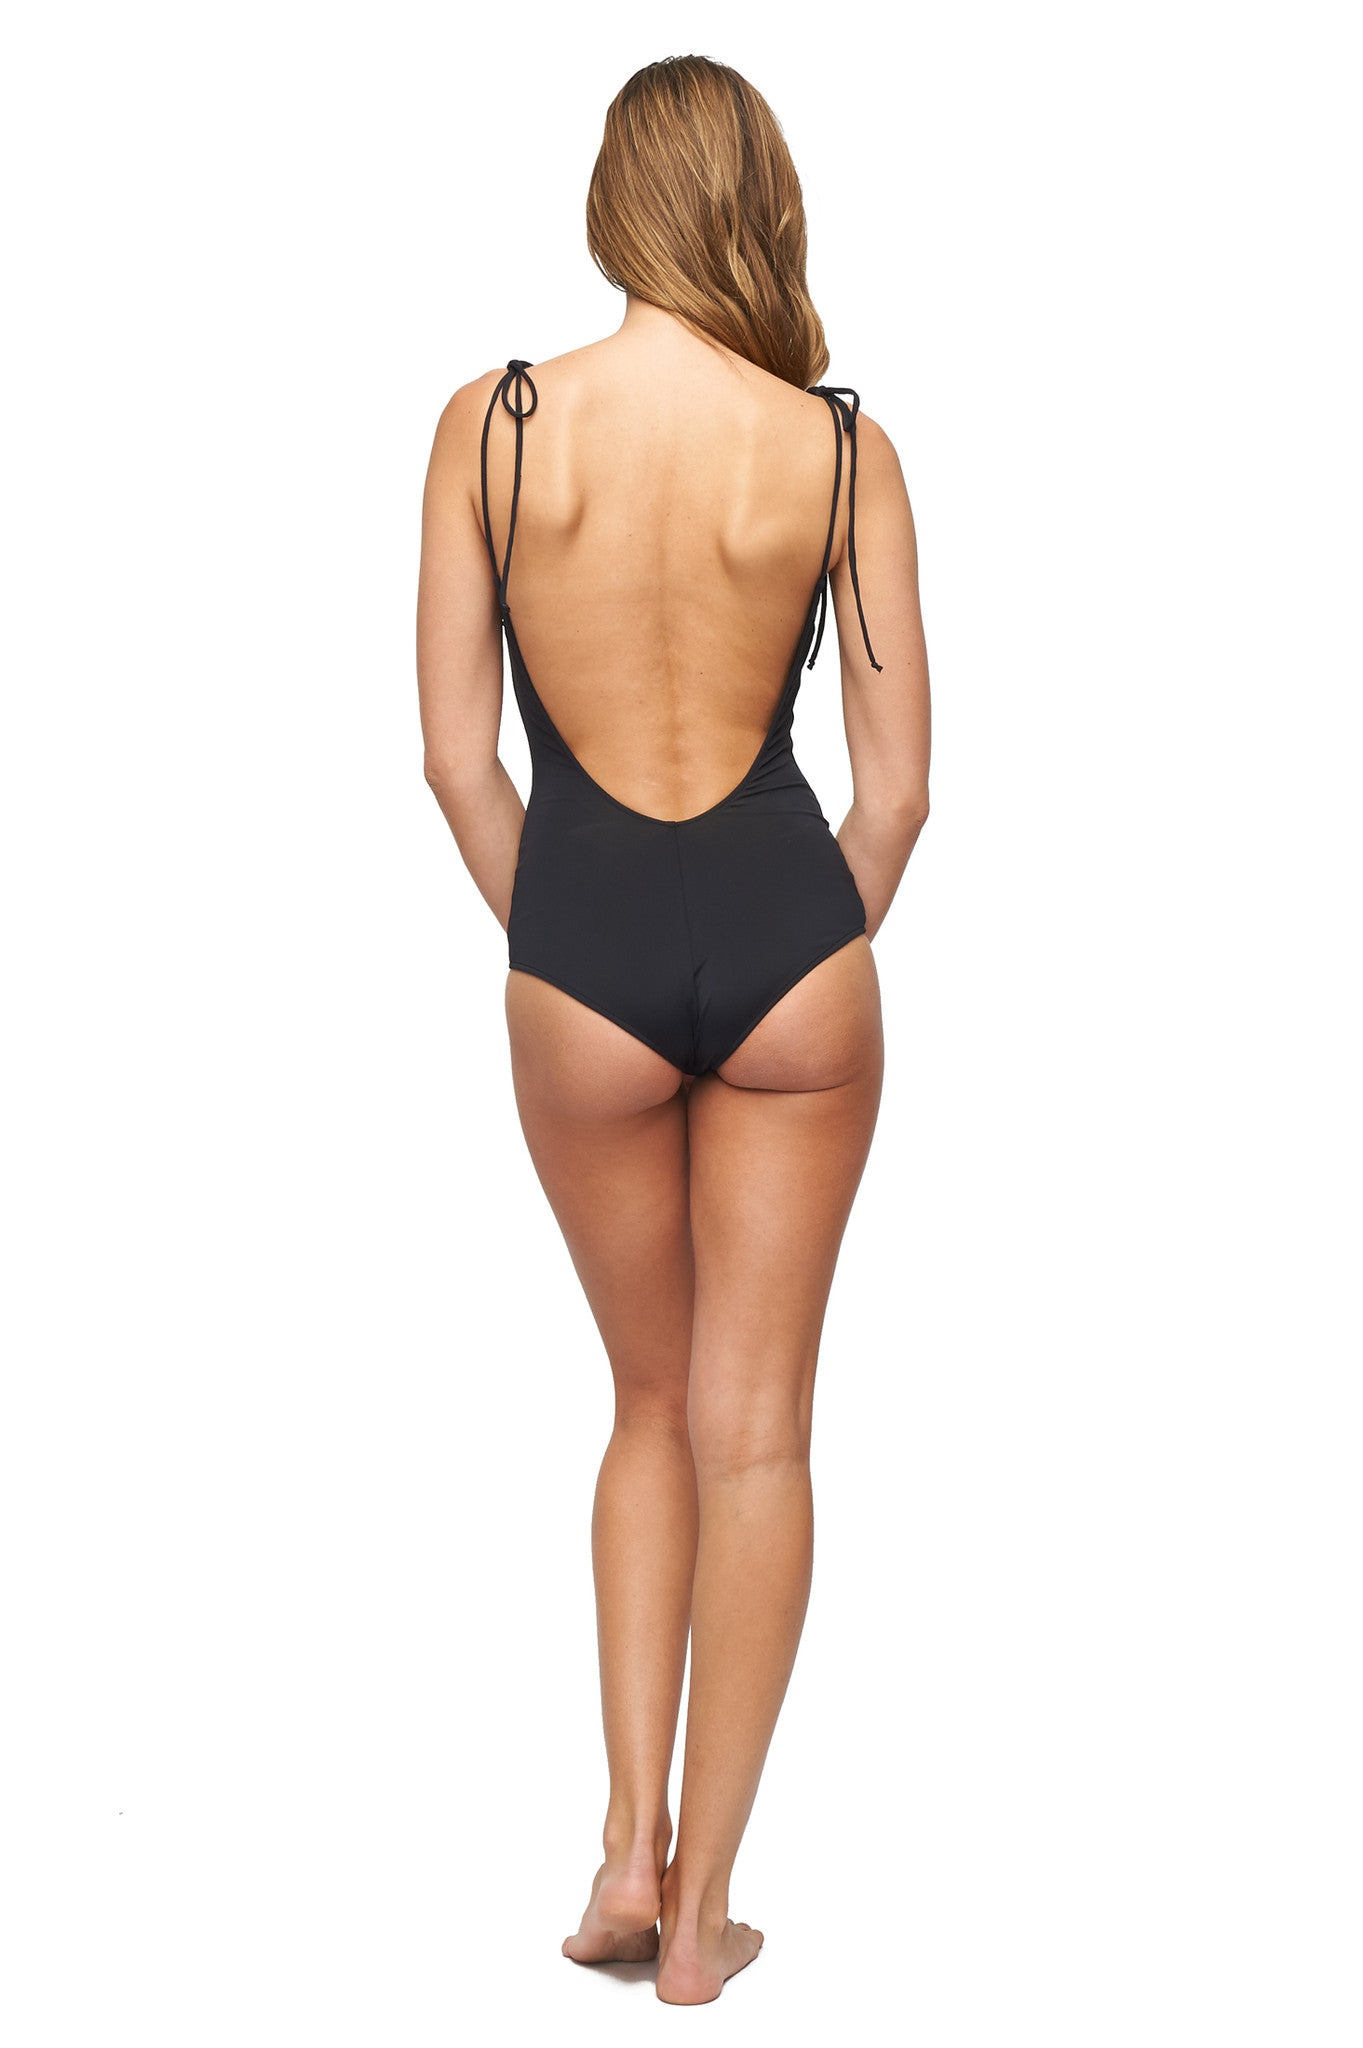 Cocos Maillot - Black